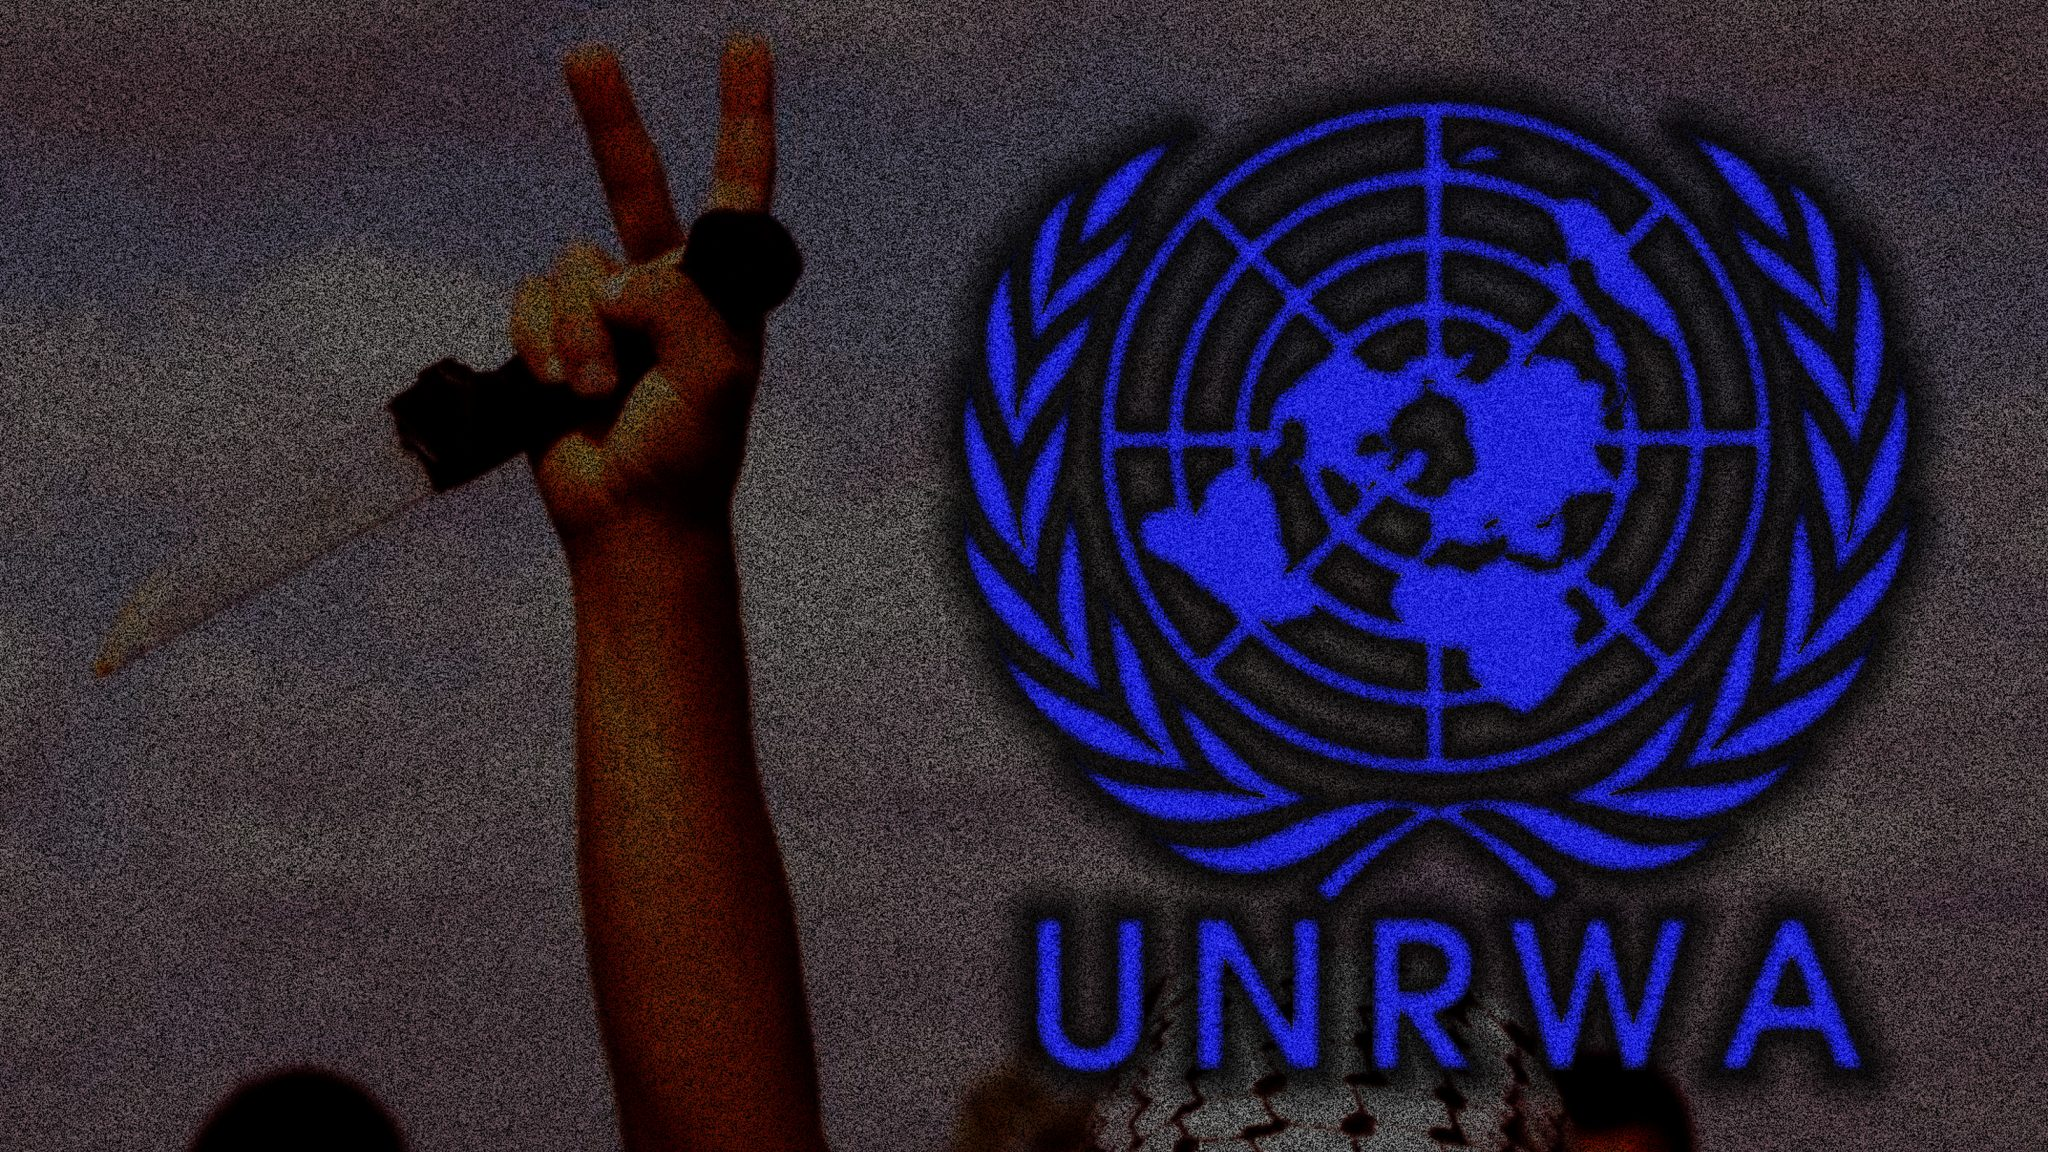 NZ must reconsider unconditional support of UNRWA